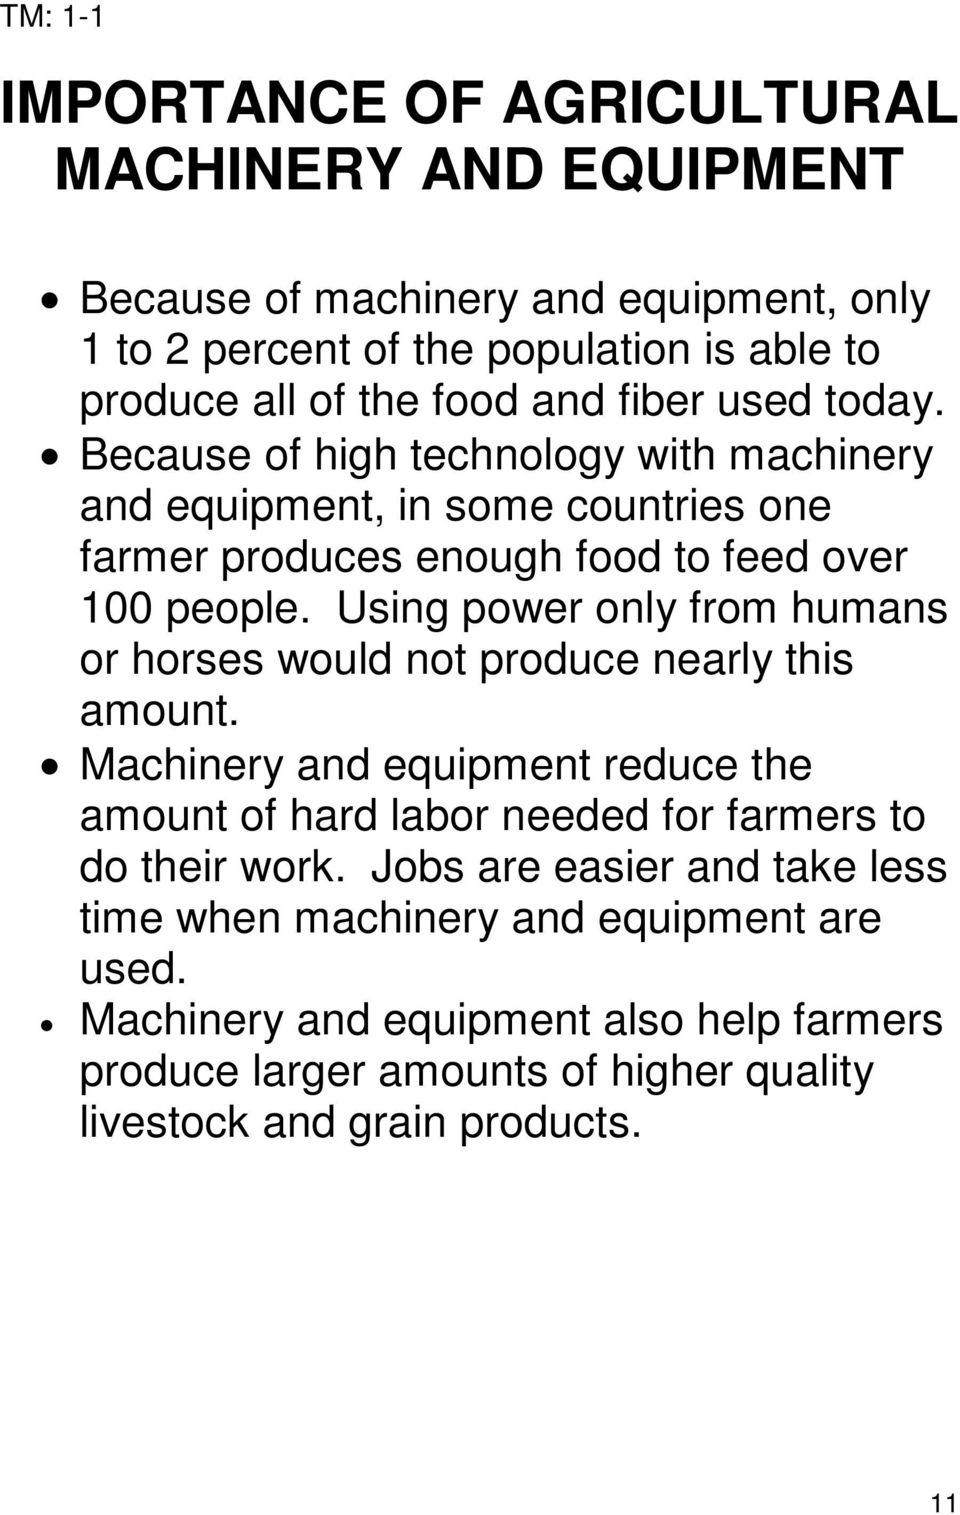 Using power only from humans or horses would not produce nearly this amount. Machinery and equipment reduce the amount of hard labor needed for farmers to do their work.